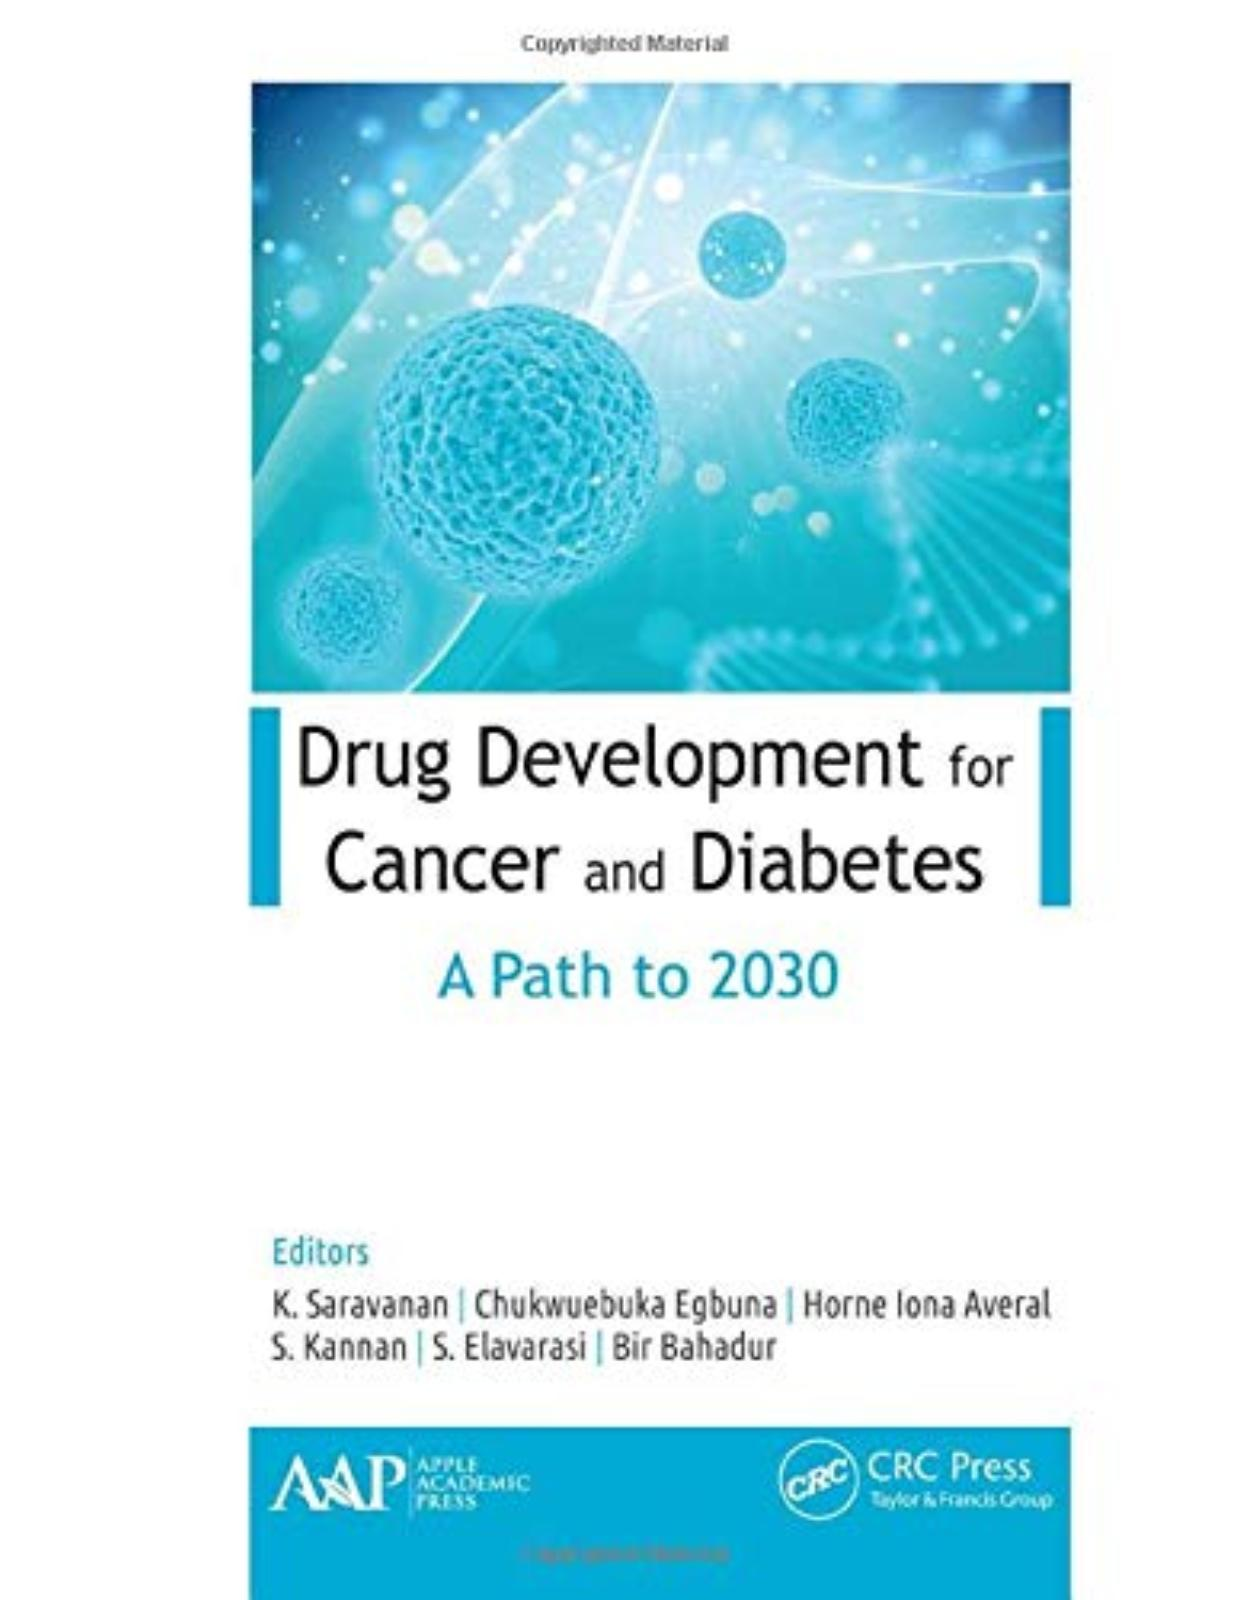 Drug Development for Cancer and Diabetes. A Path to 2030